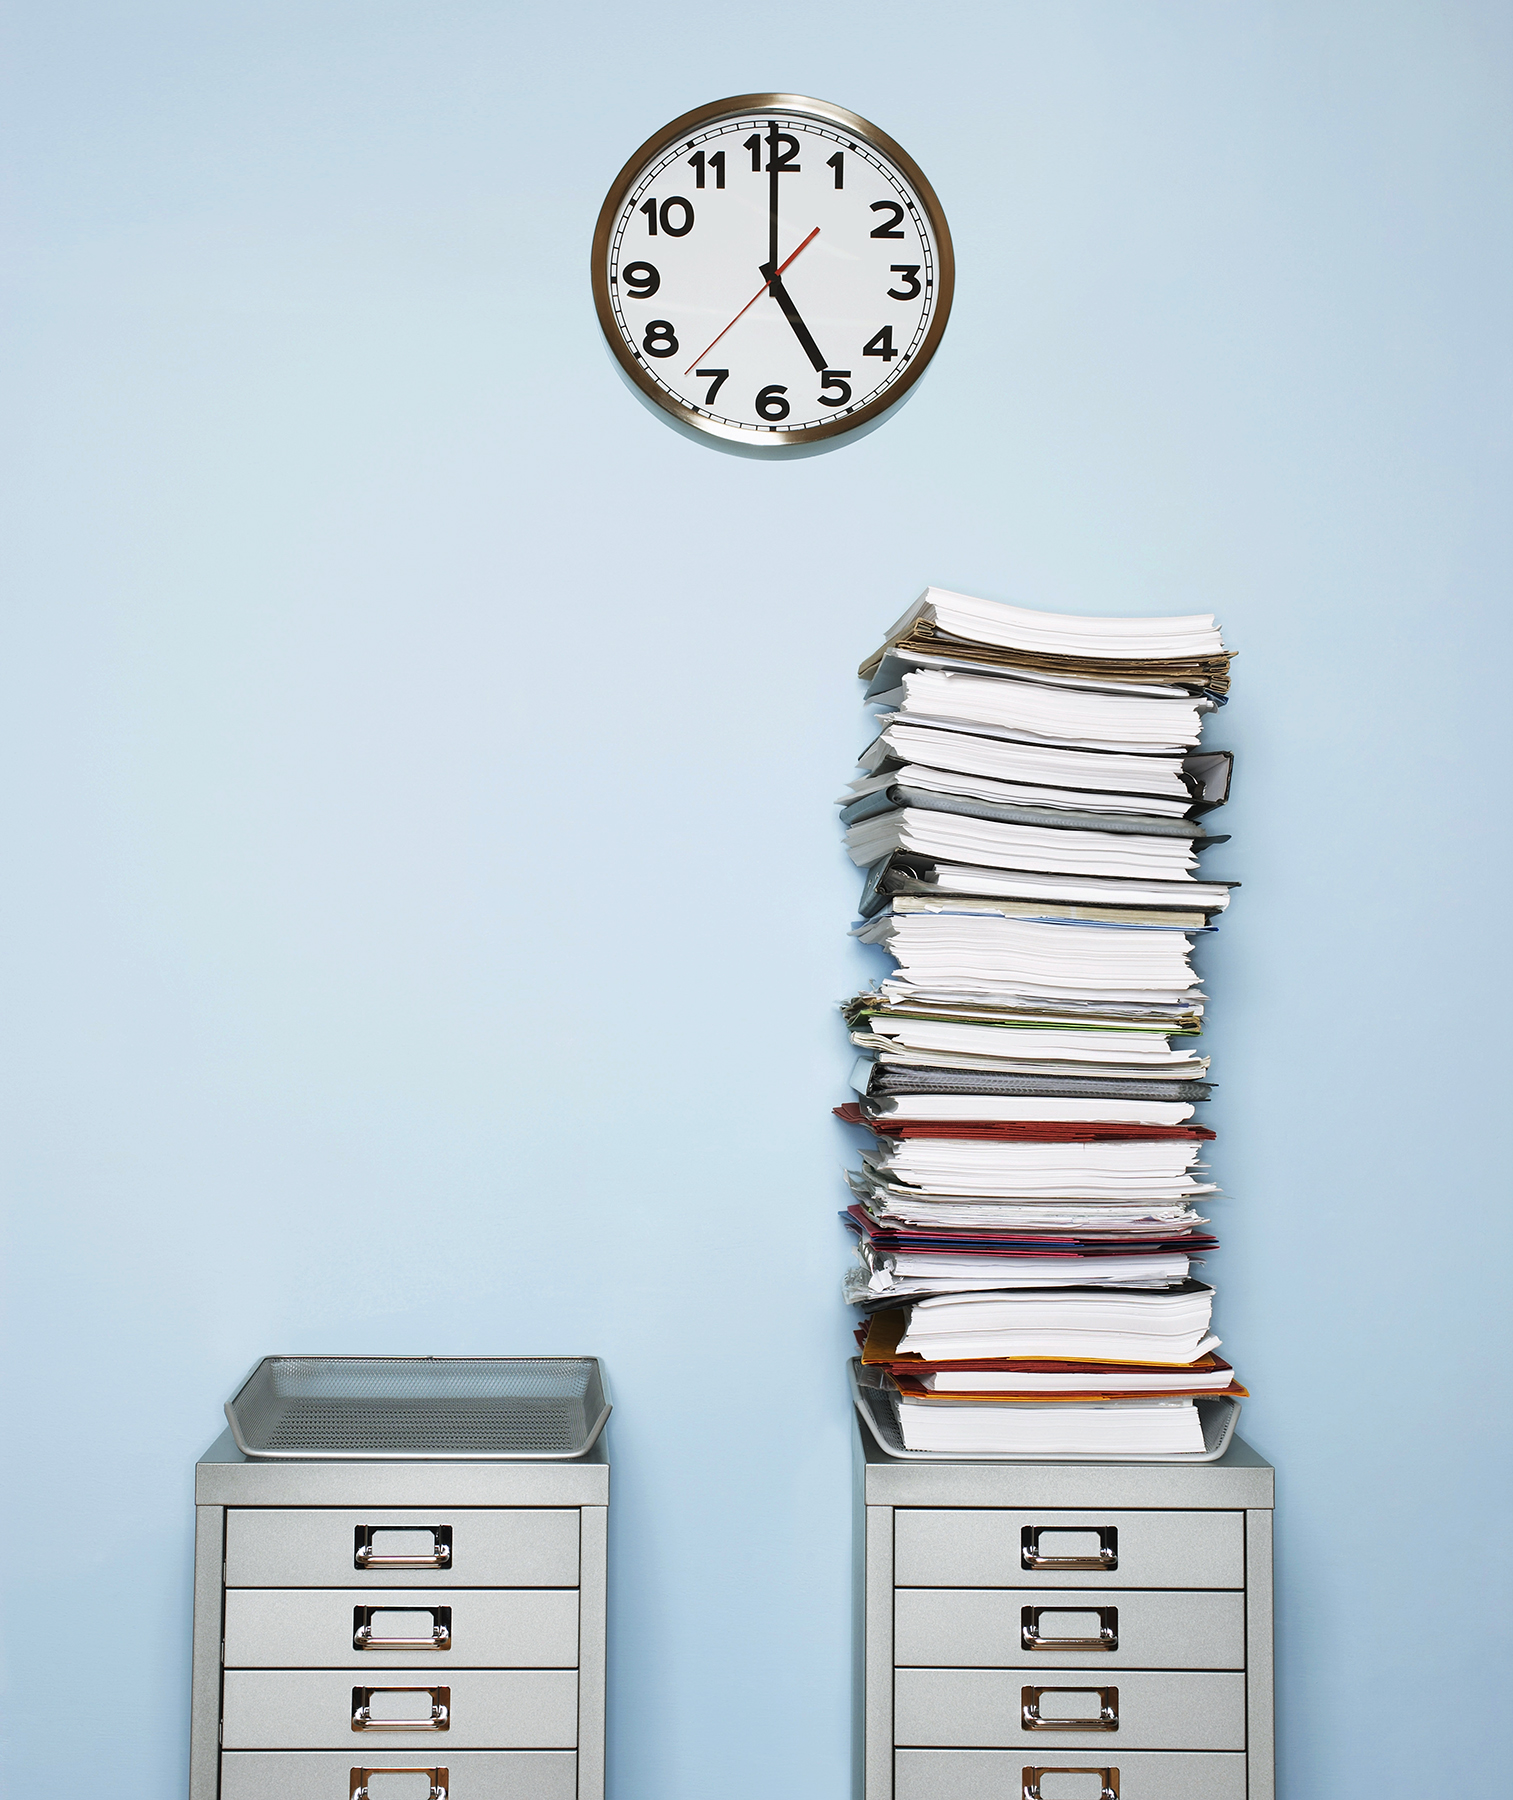 file-cabinets-work-notebooks